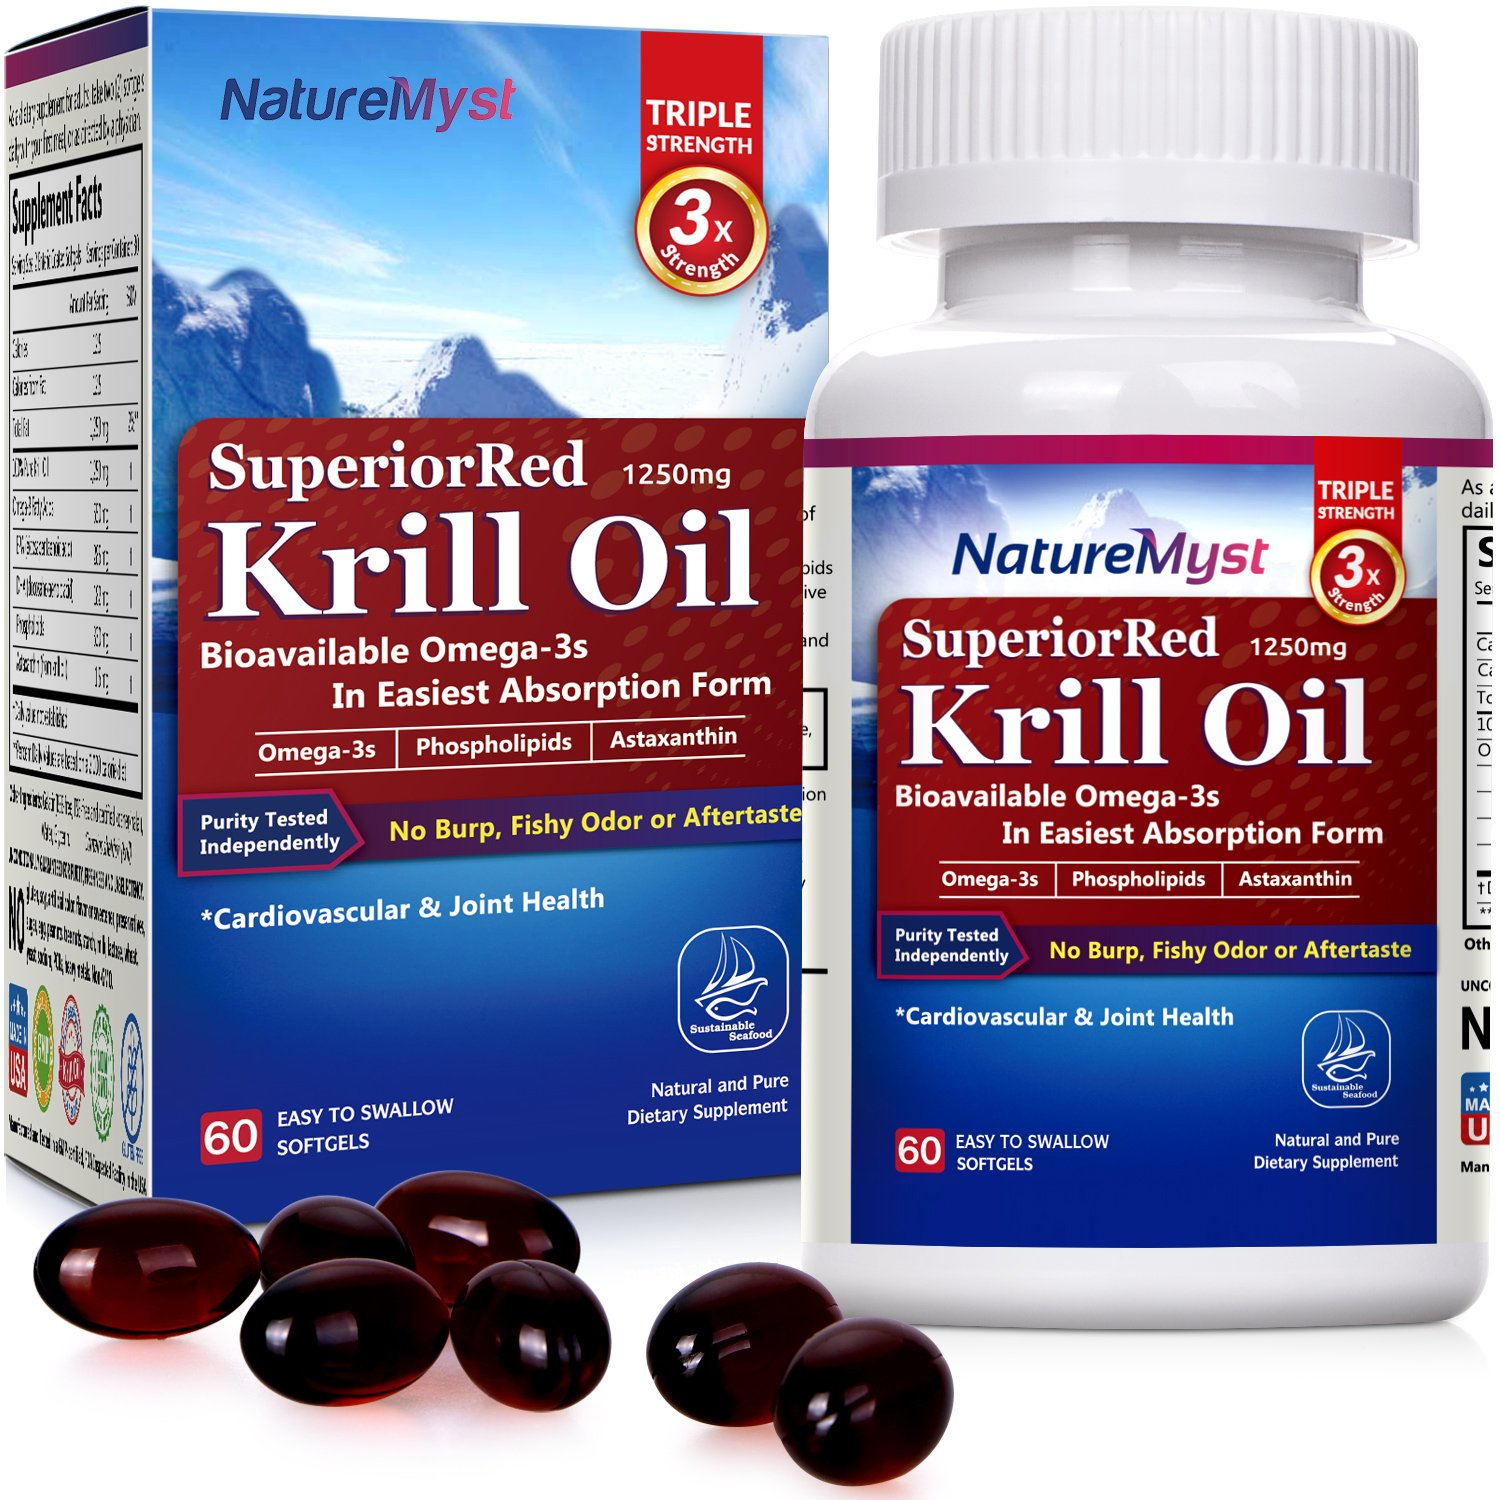 Professional Grade Krill Oil, 1250mg, 60 Liquid Softgels (Cut One in Half to See the Clear Difference)